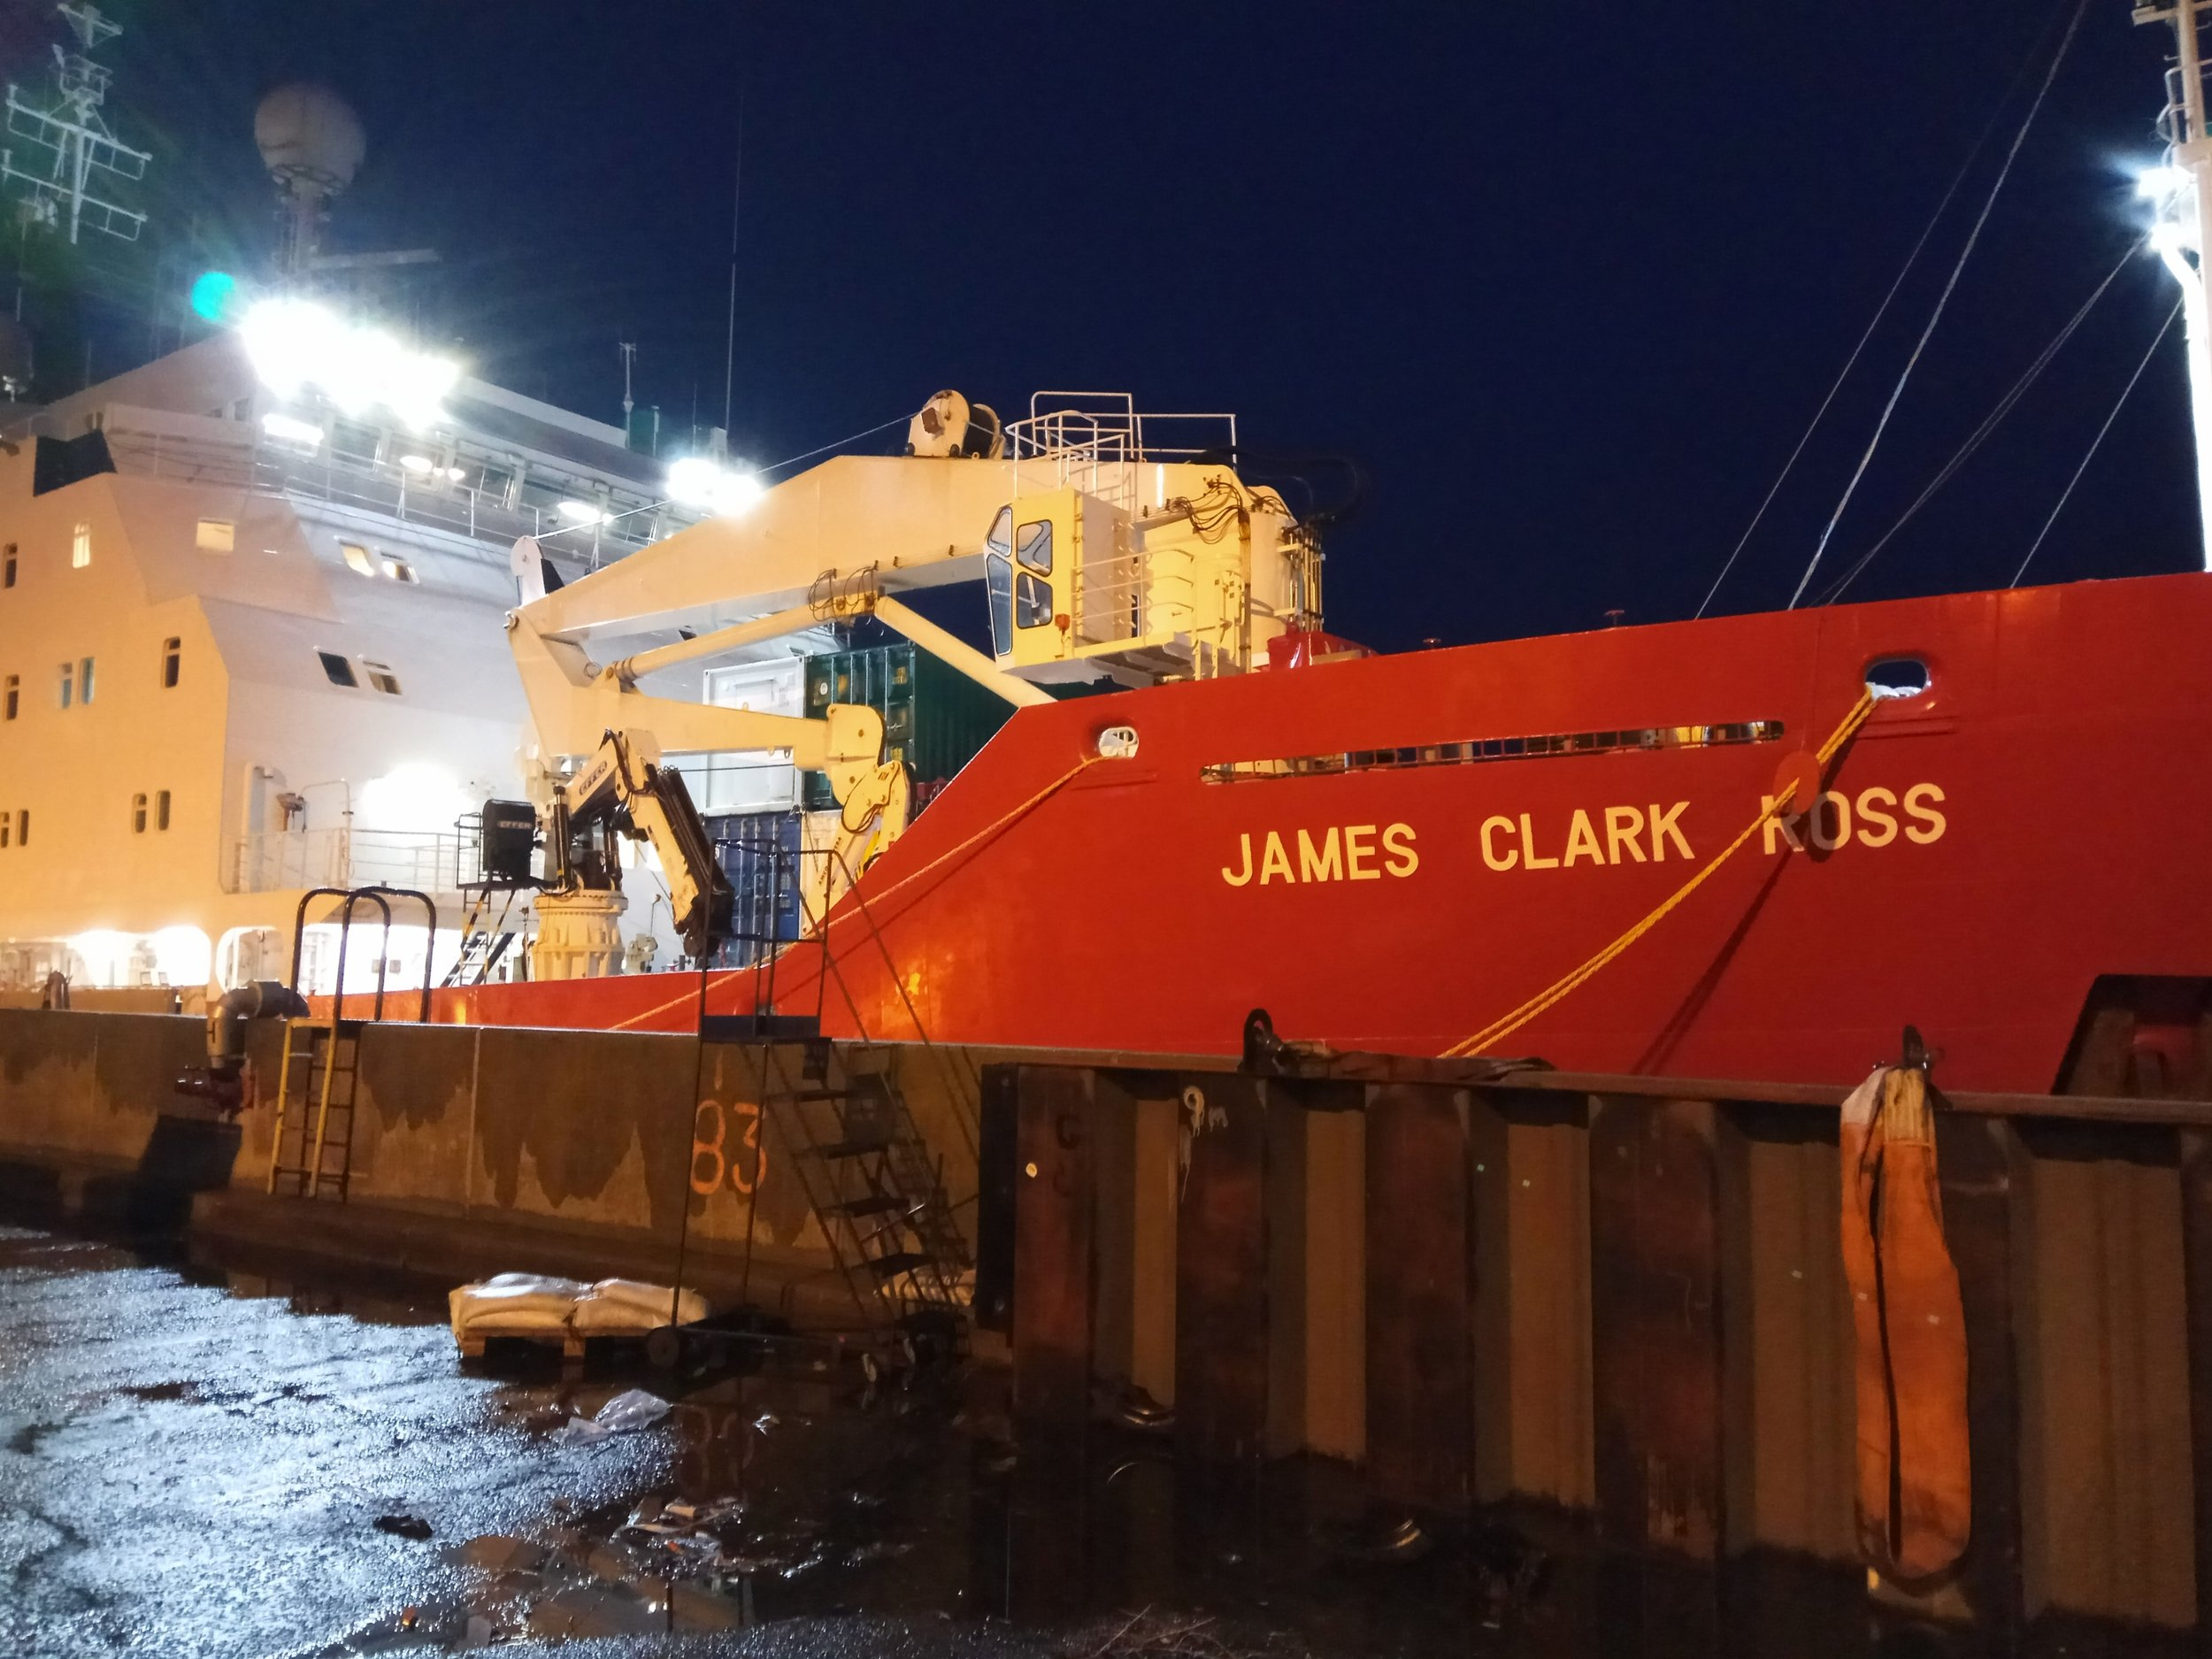 A nocturnal view of the RRV James Clark Ross before the departure.